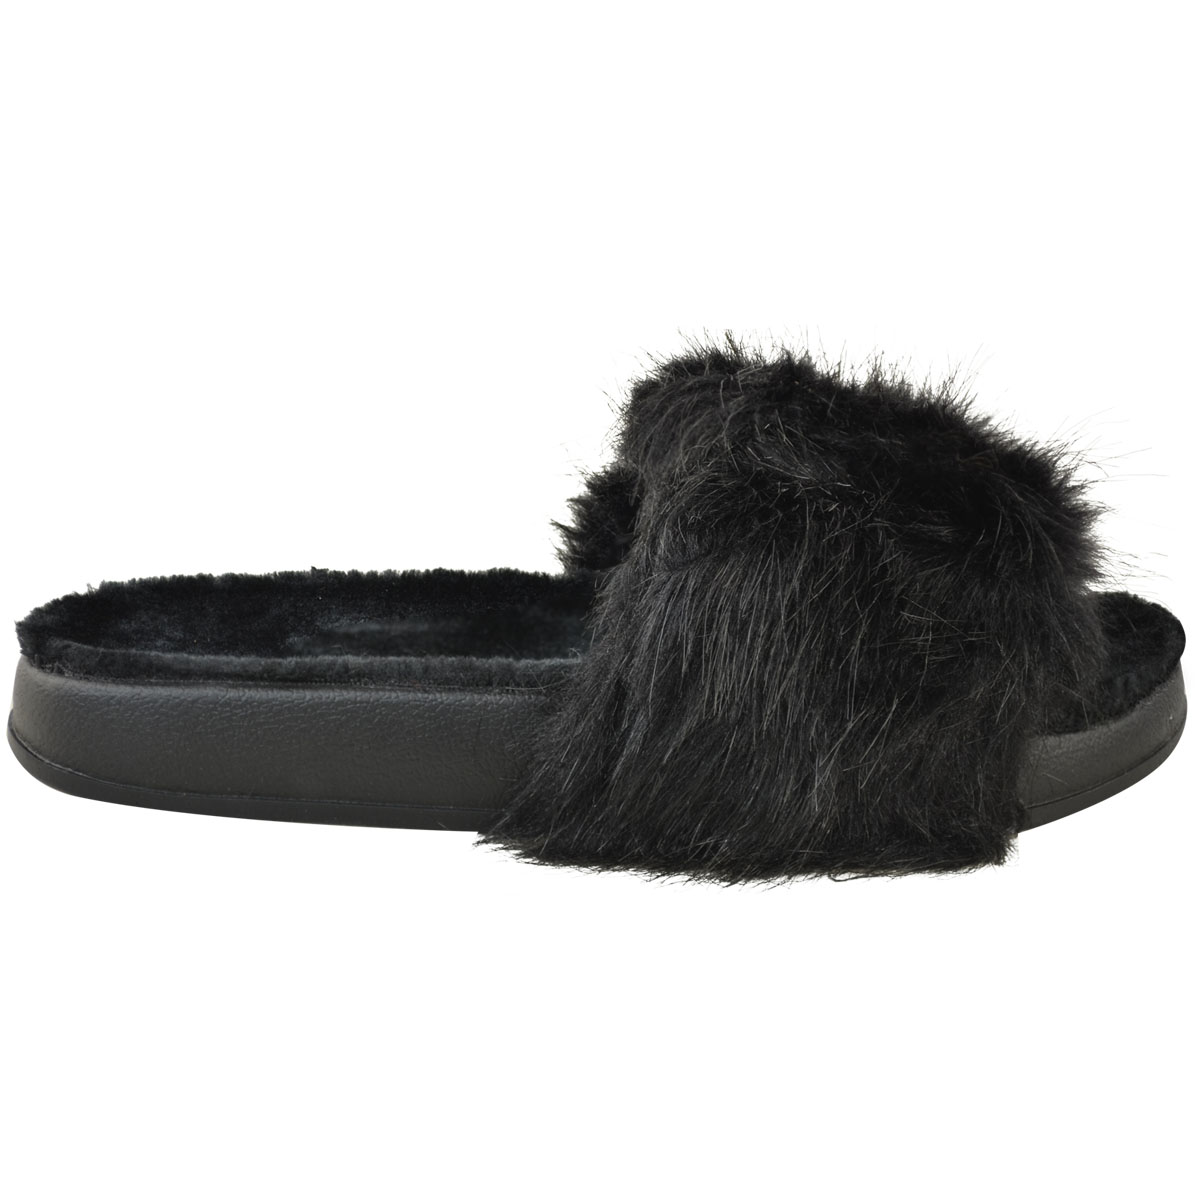 Womens Ladies Furry Slides Fluffy Sandals Summer Slides